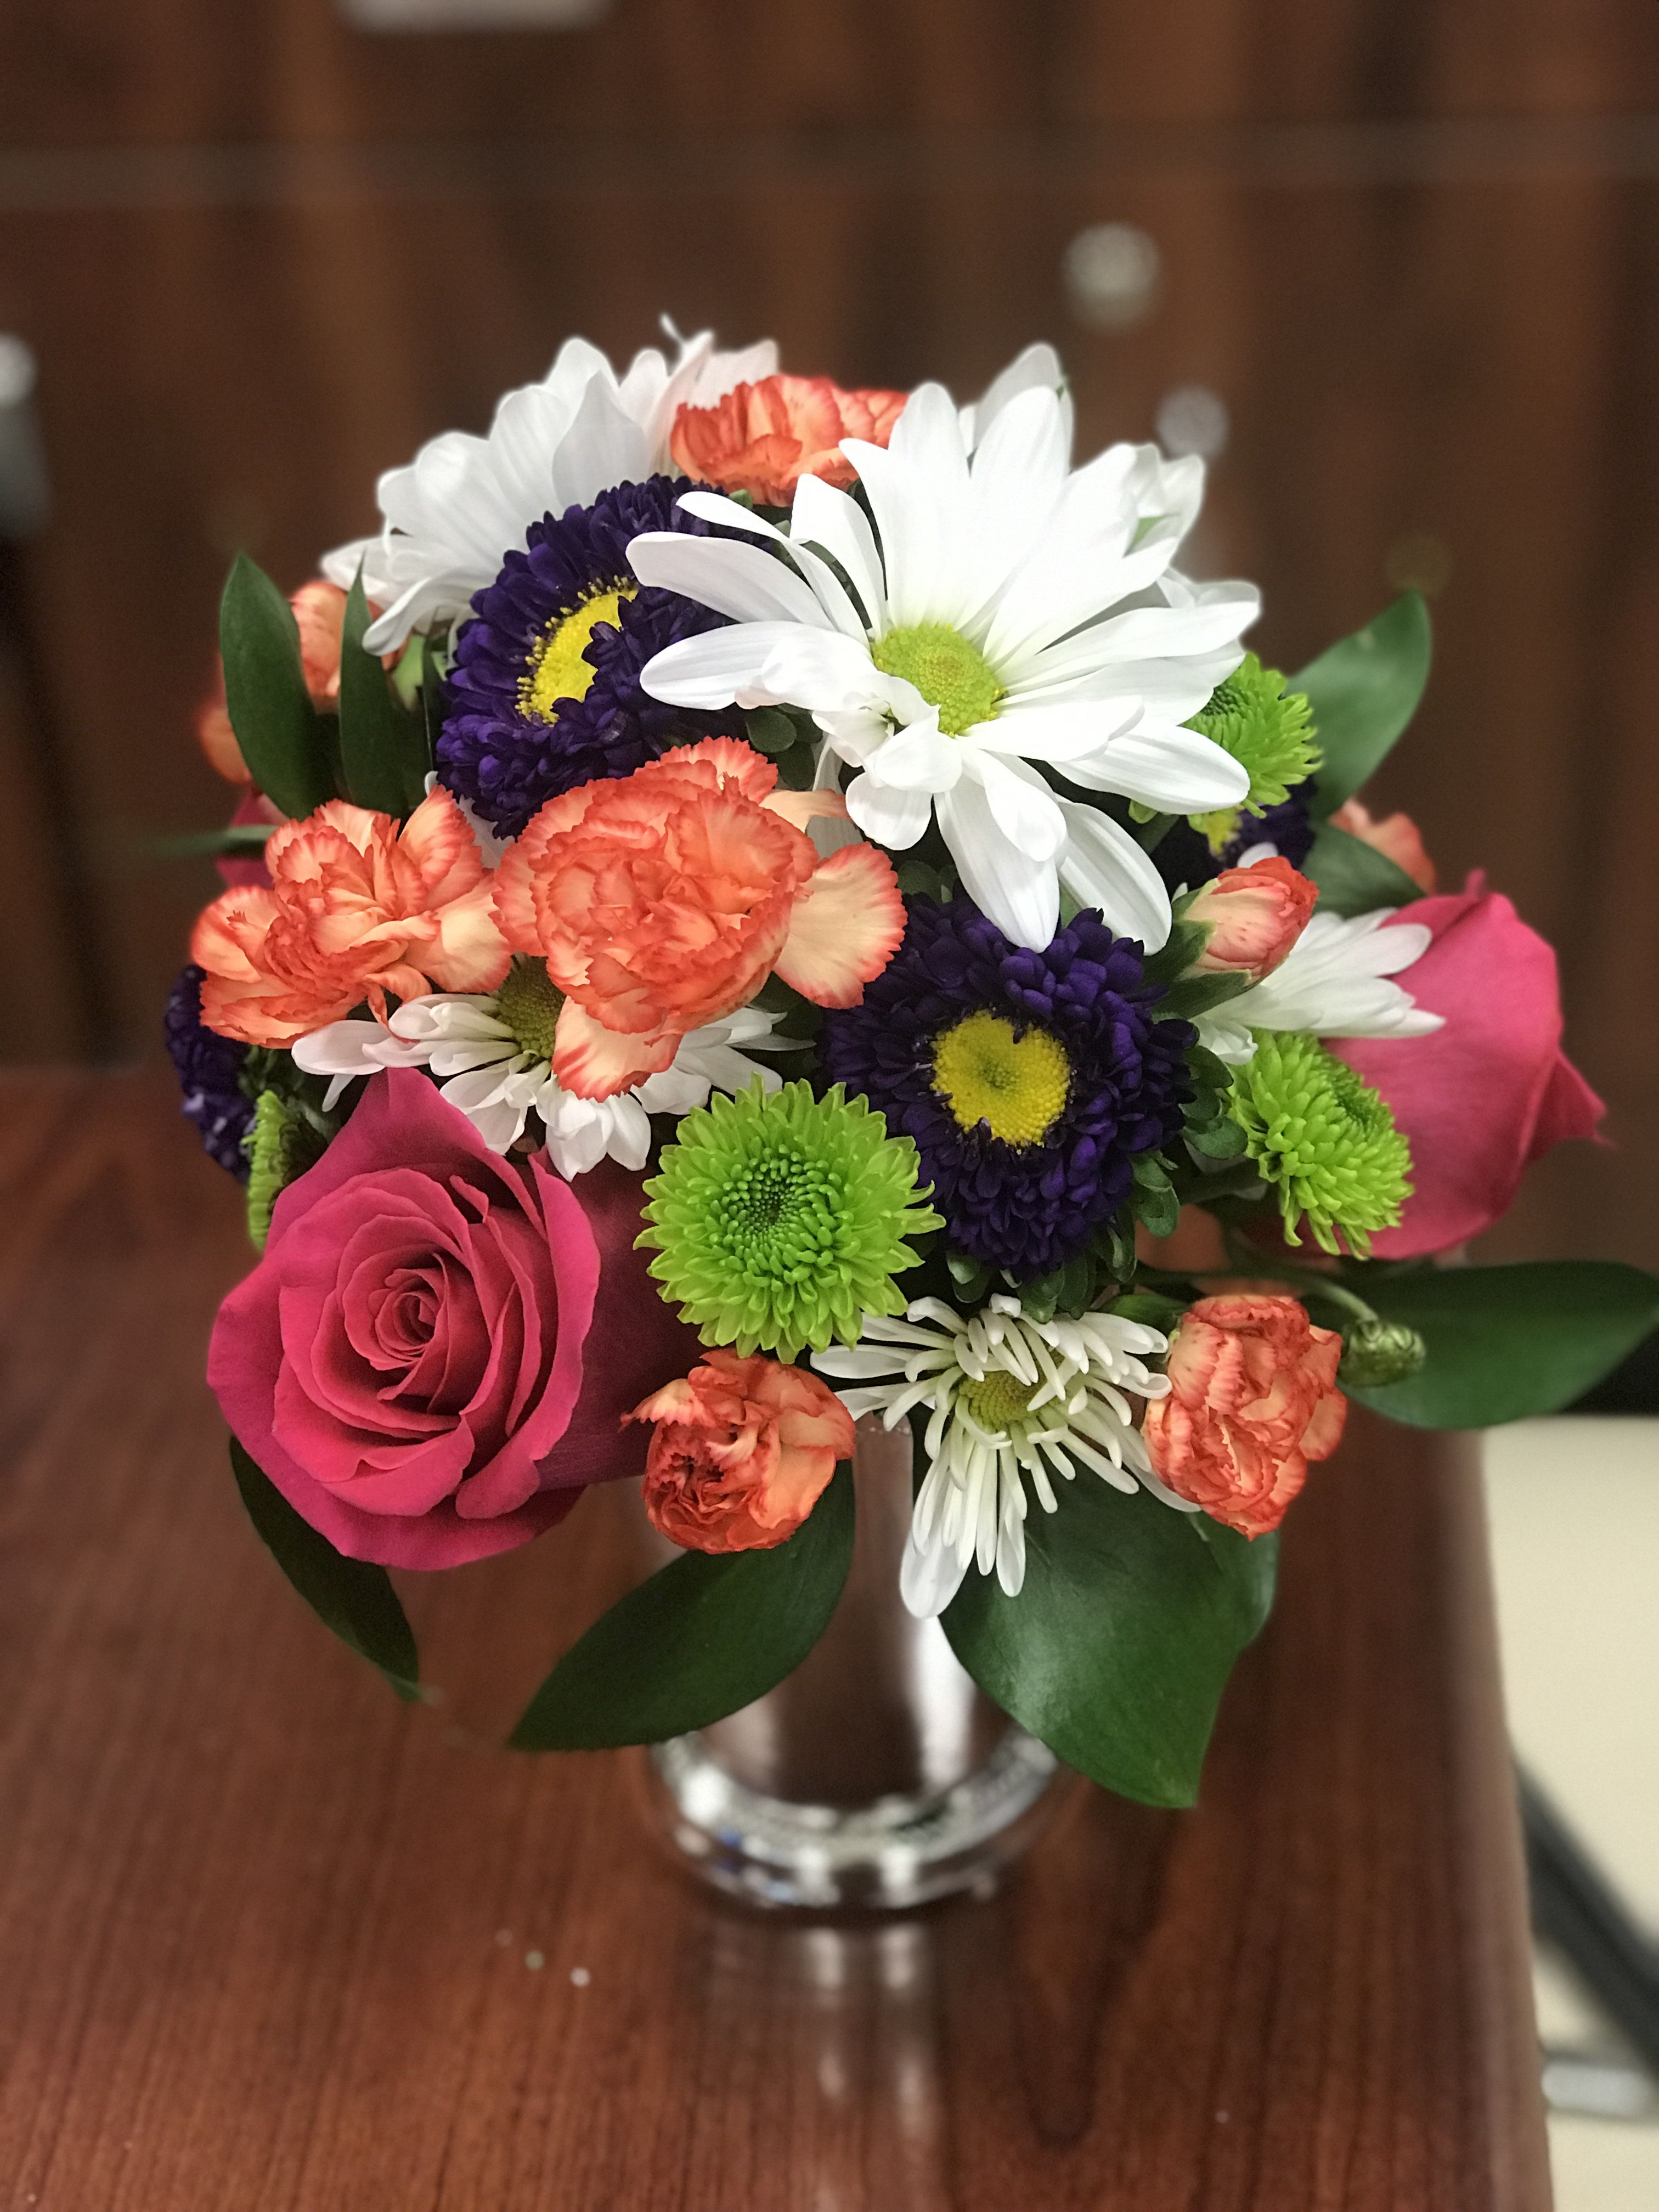 Final Spring Round Design Arrangement Using Purple Chinese Asters Orange Pixie Carnations White Daisy Mums Floral Design Classes Floral Foam Hot Pink Roses